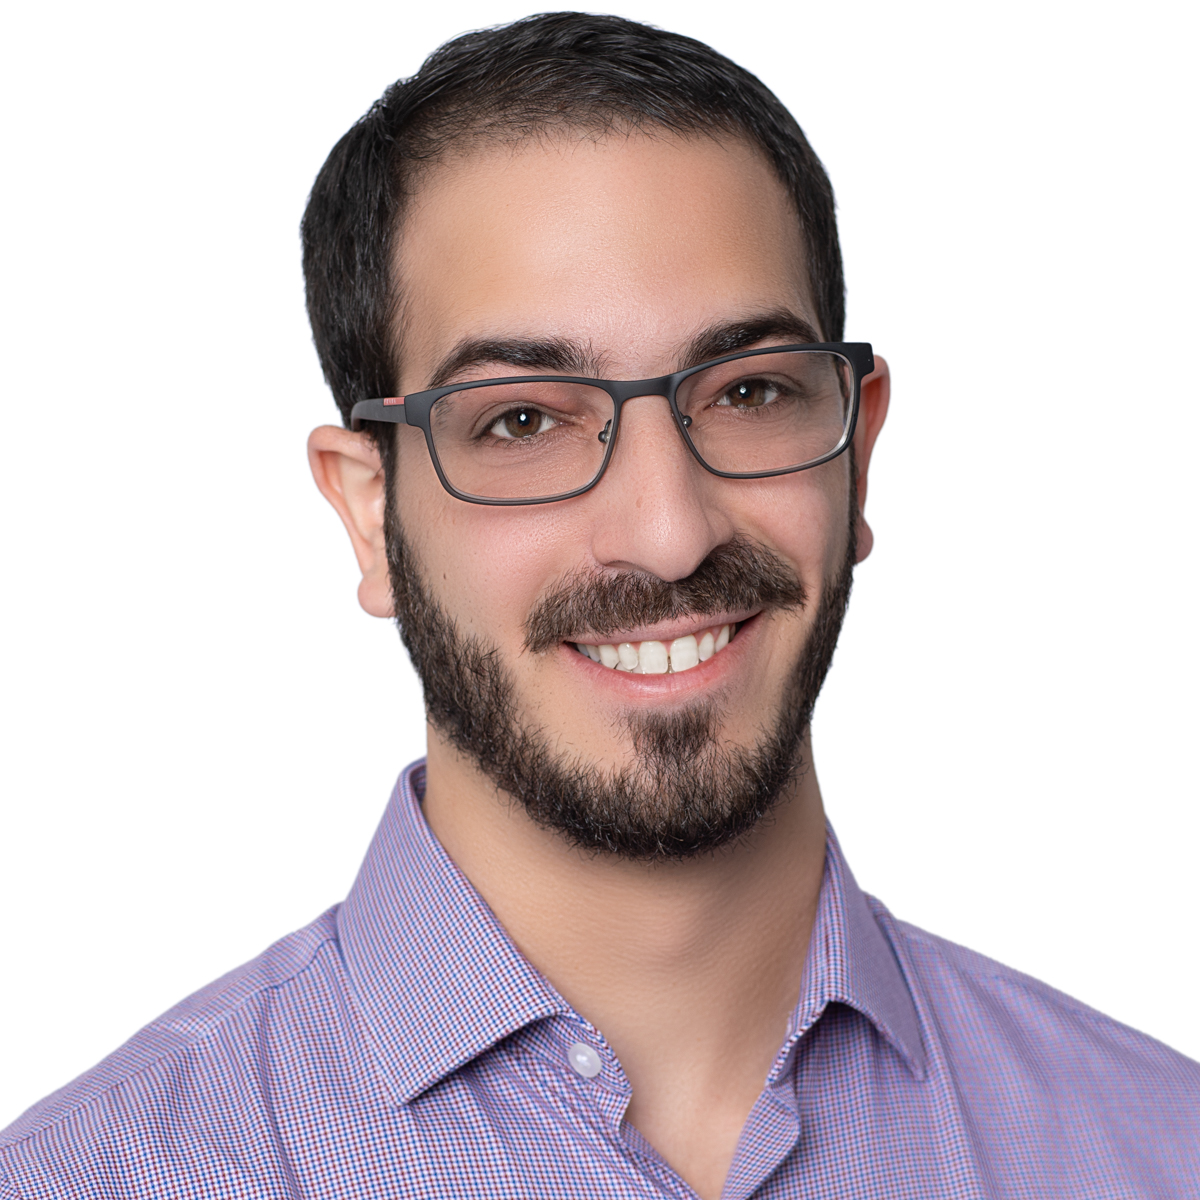 Rob Gurzeev, CEO and Co-Founder of CyCognito